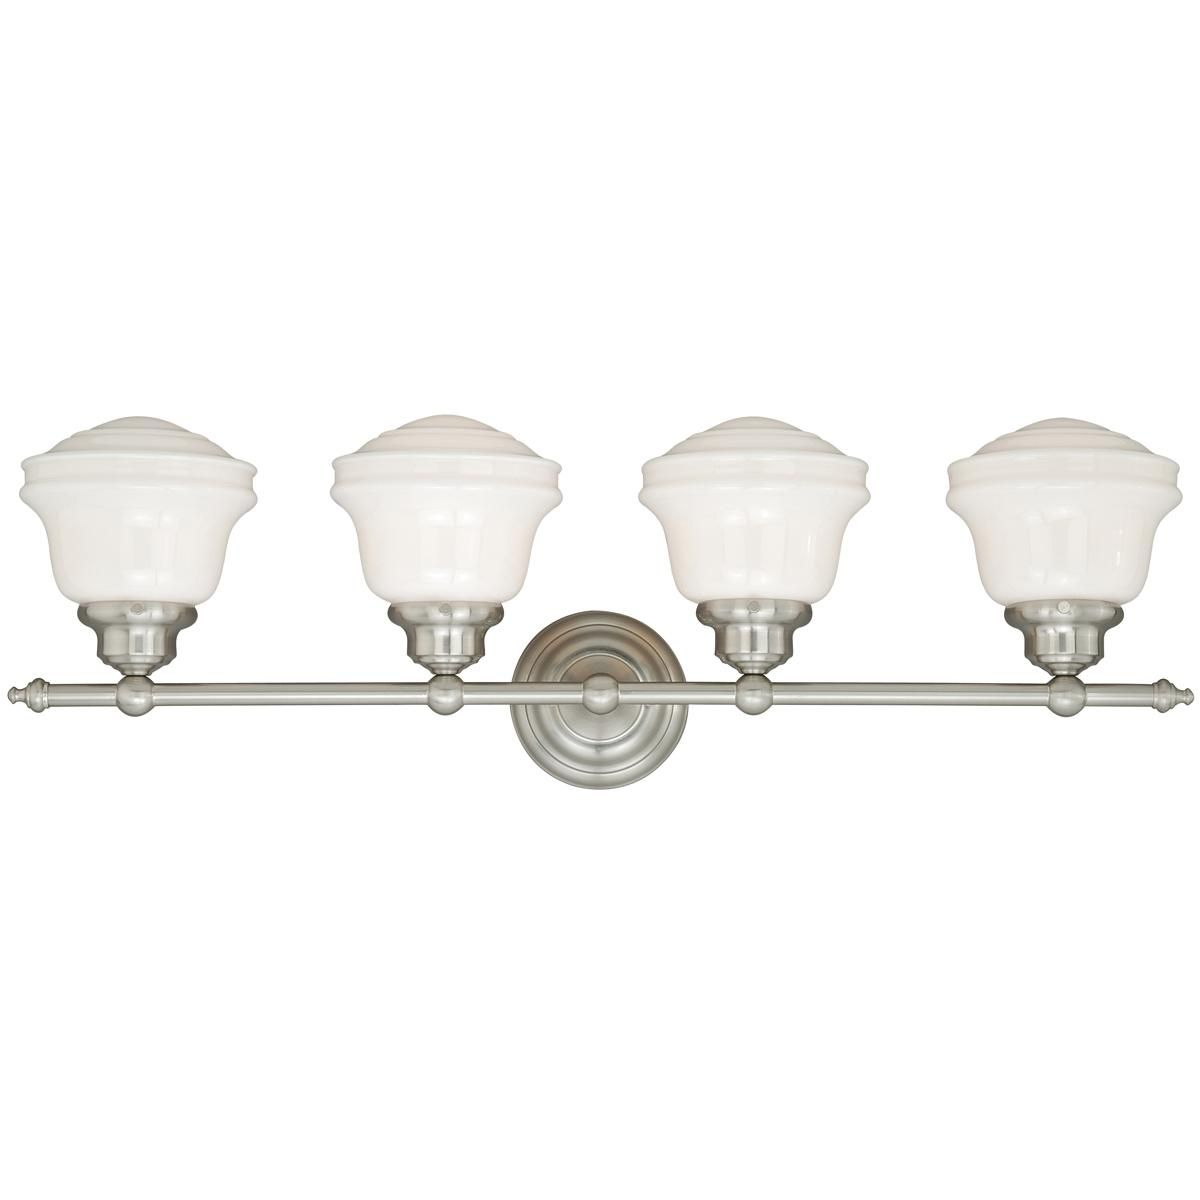 Photo of Milk Glass Bath Light – 4 Light